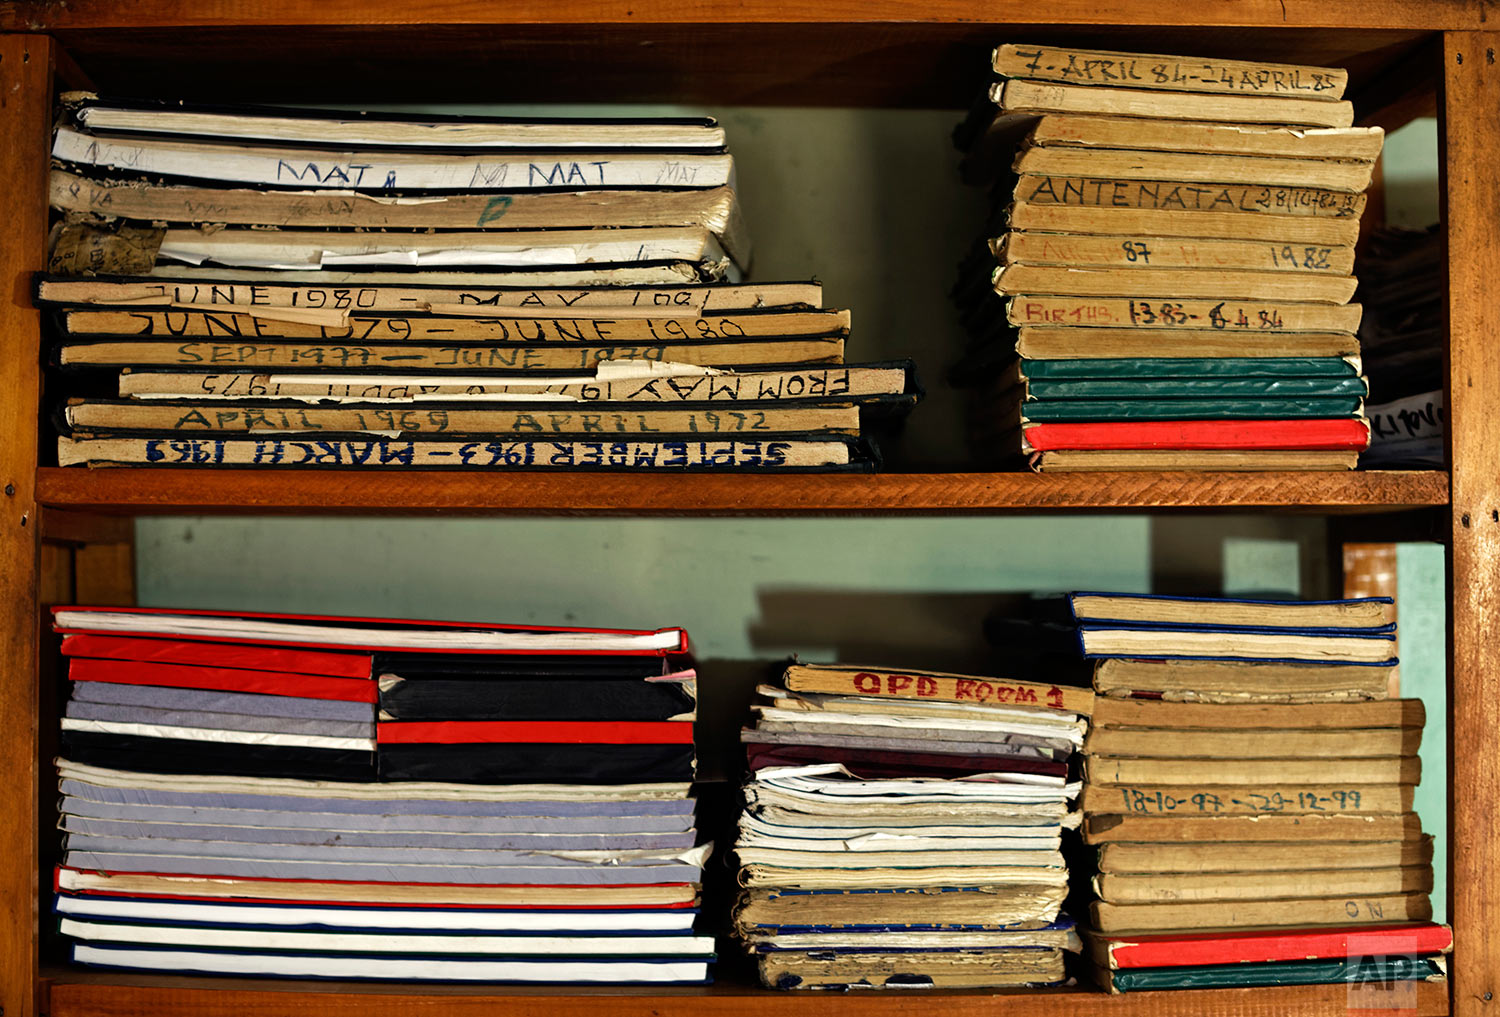 In this Tuesday, May 30, 2017 photo, old archives of birth registrations recorded only by hand in books, prior to the introduction of a national computerized register where administrators can enter births over the internet, are stored on shelves at the St. Joseph's Hospital in Kitovu, Uganda. (AP Photo/Ben Curtis)